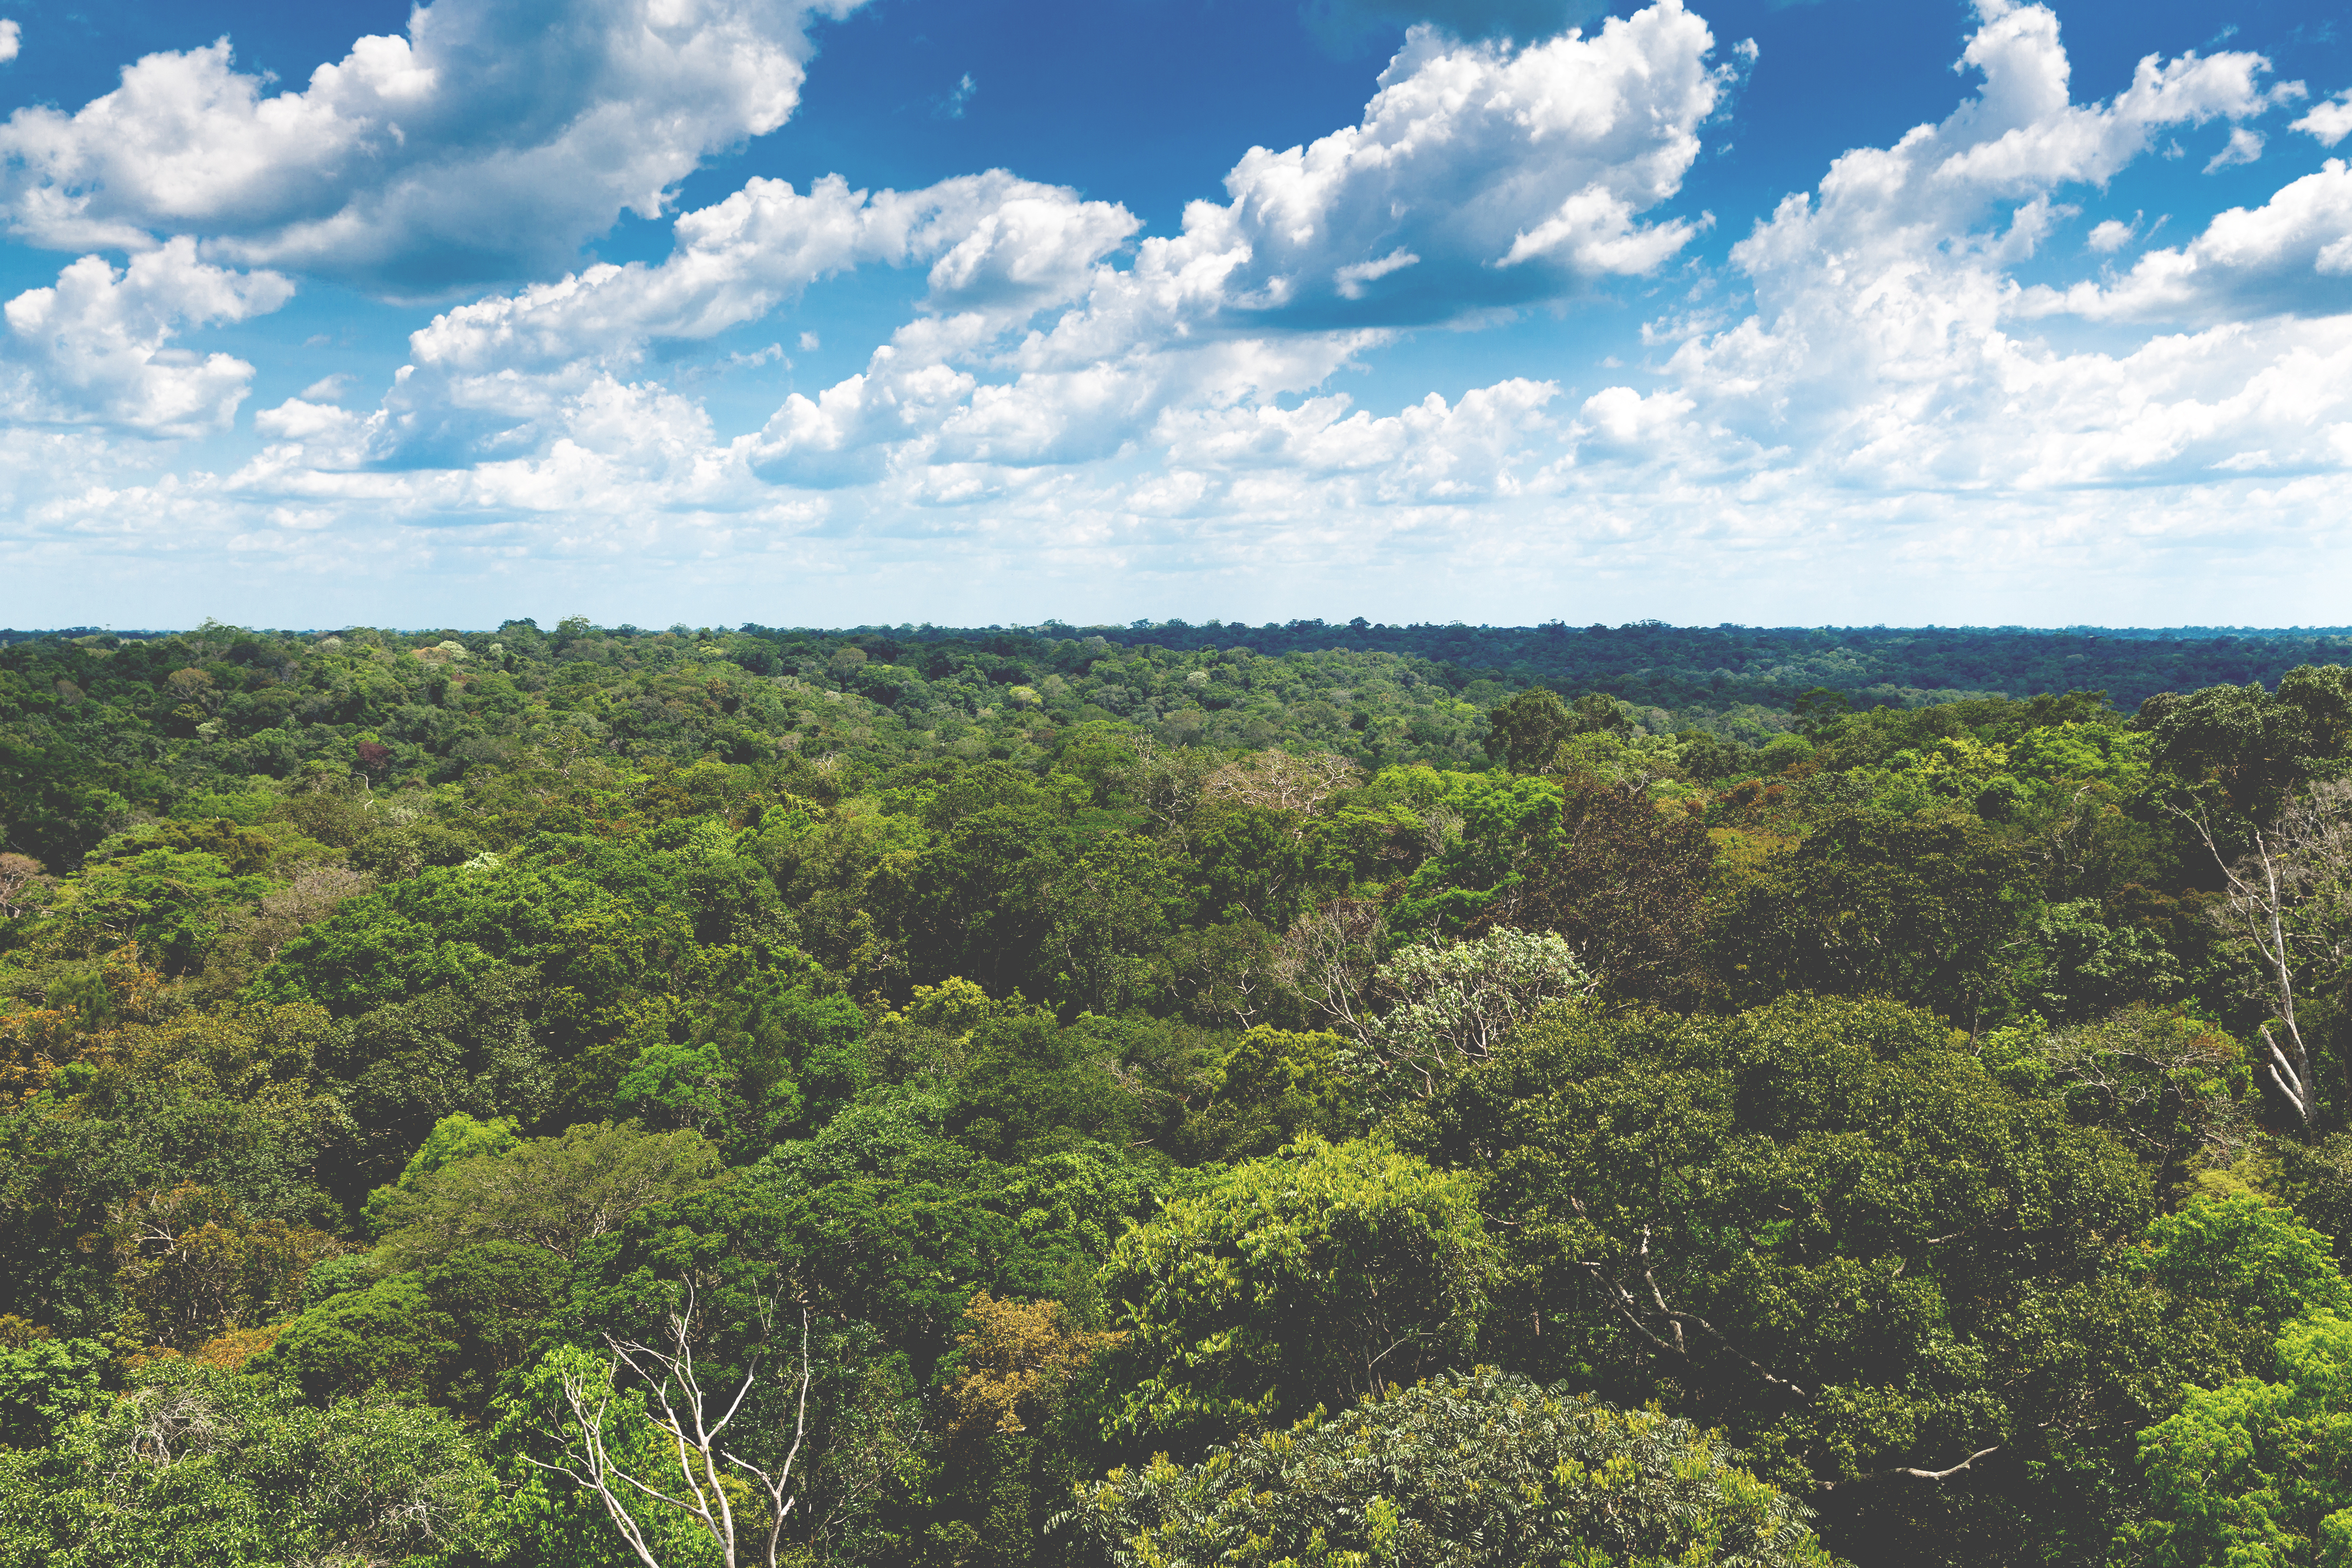 Besafe have helped plant 500 trees in the Amazon Rainforest